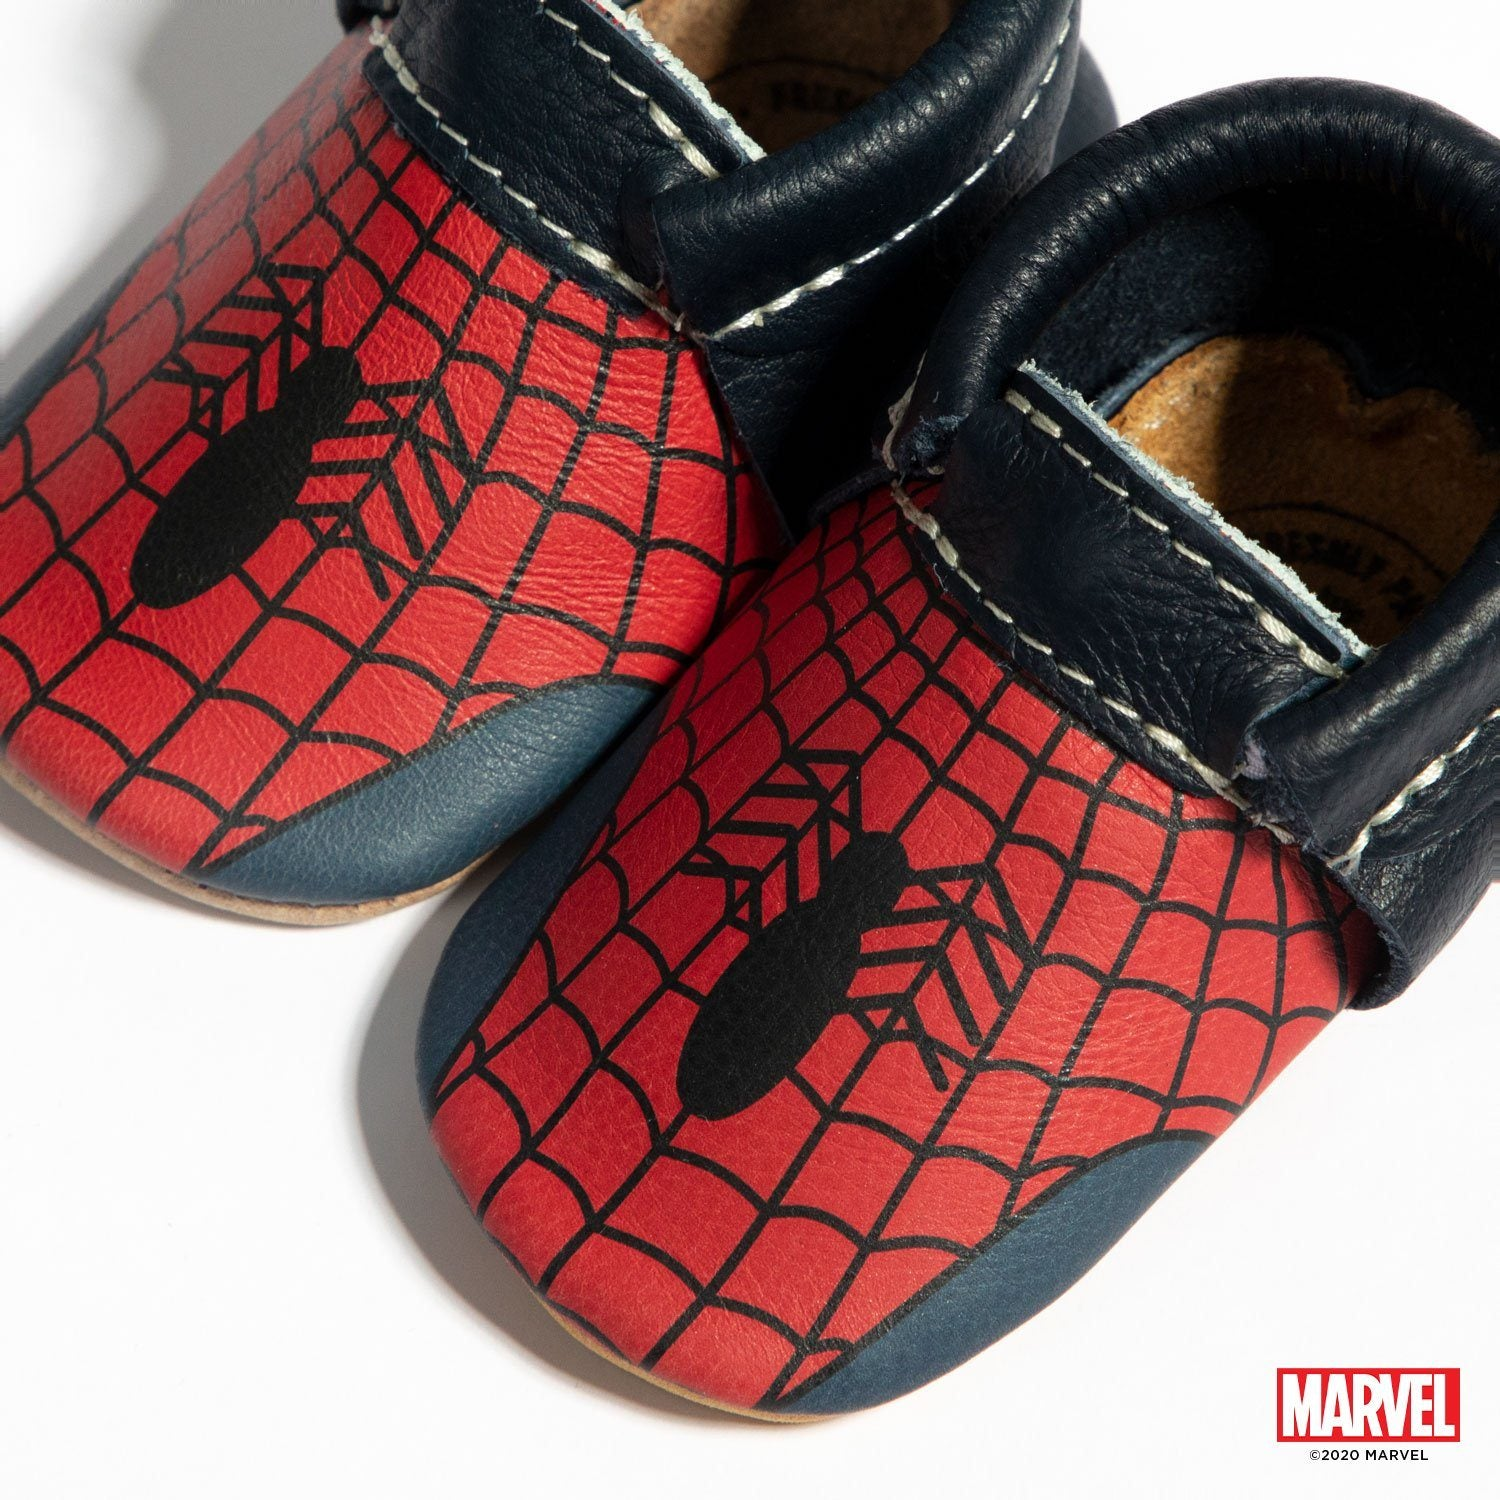 I Am Spider-Man City Mocc City Moccs Soft Soles